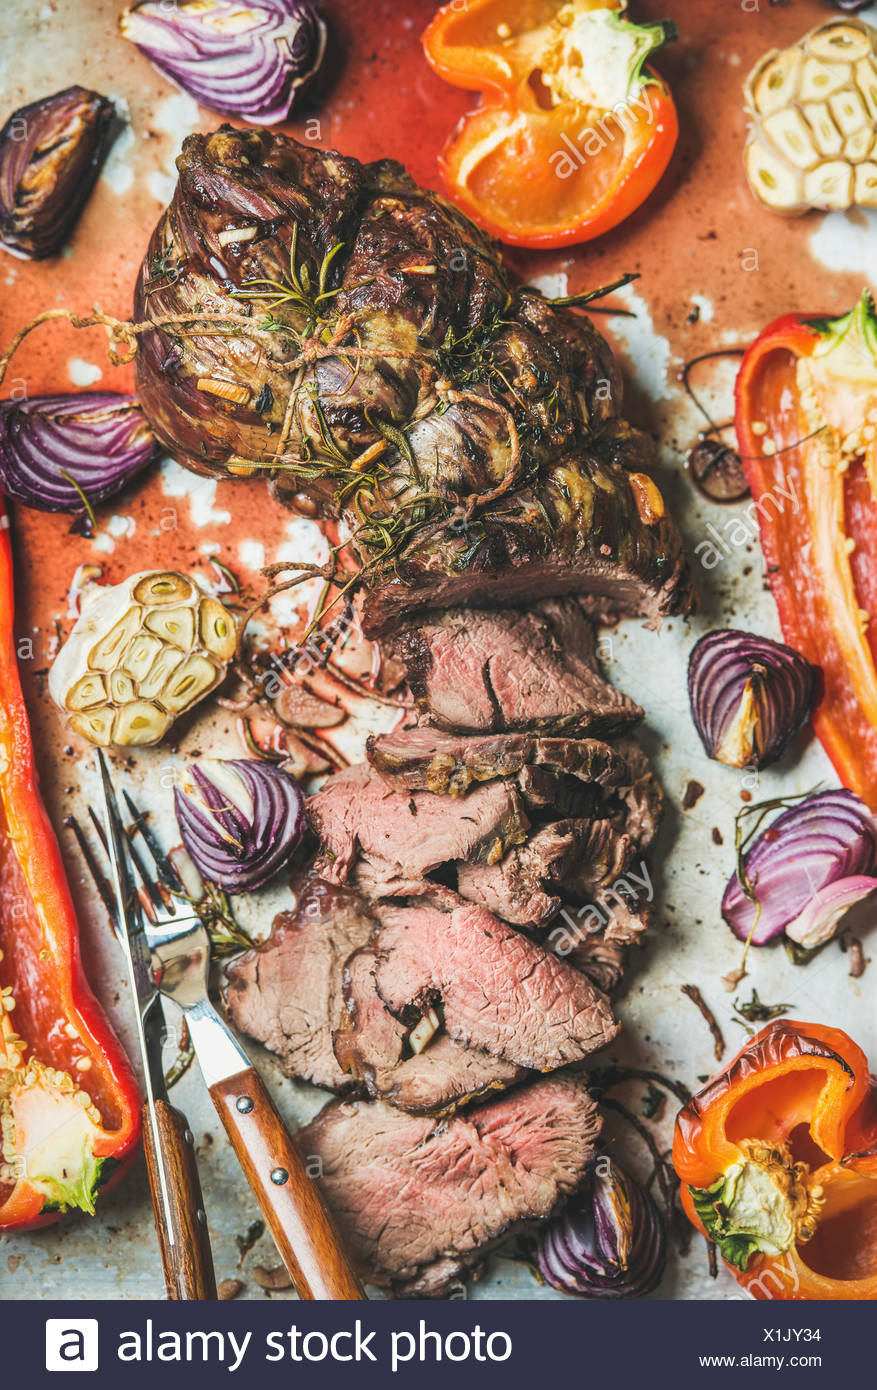 Cooked Roast beef meat with roasted vegetables and herbs in metal baking tray, top view, vertical composition. Slow food concept - Stock Image